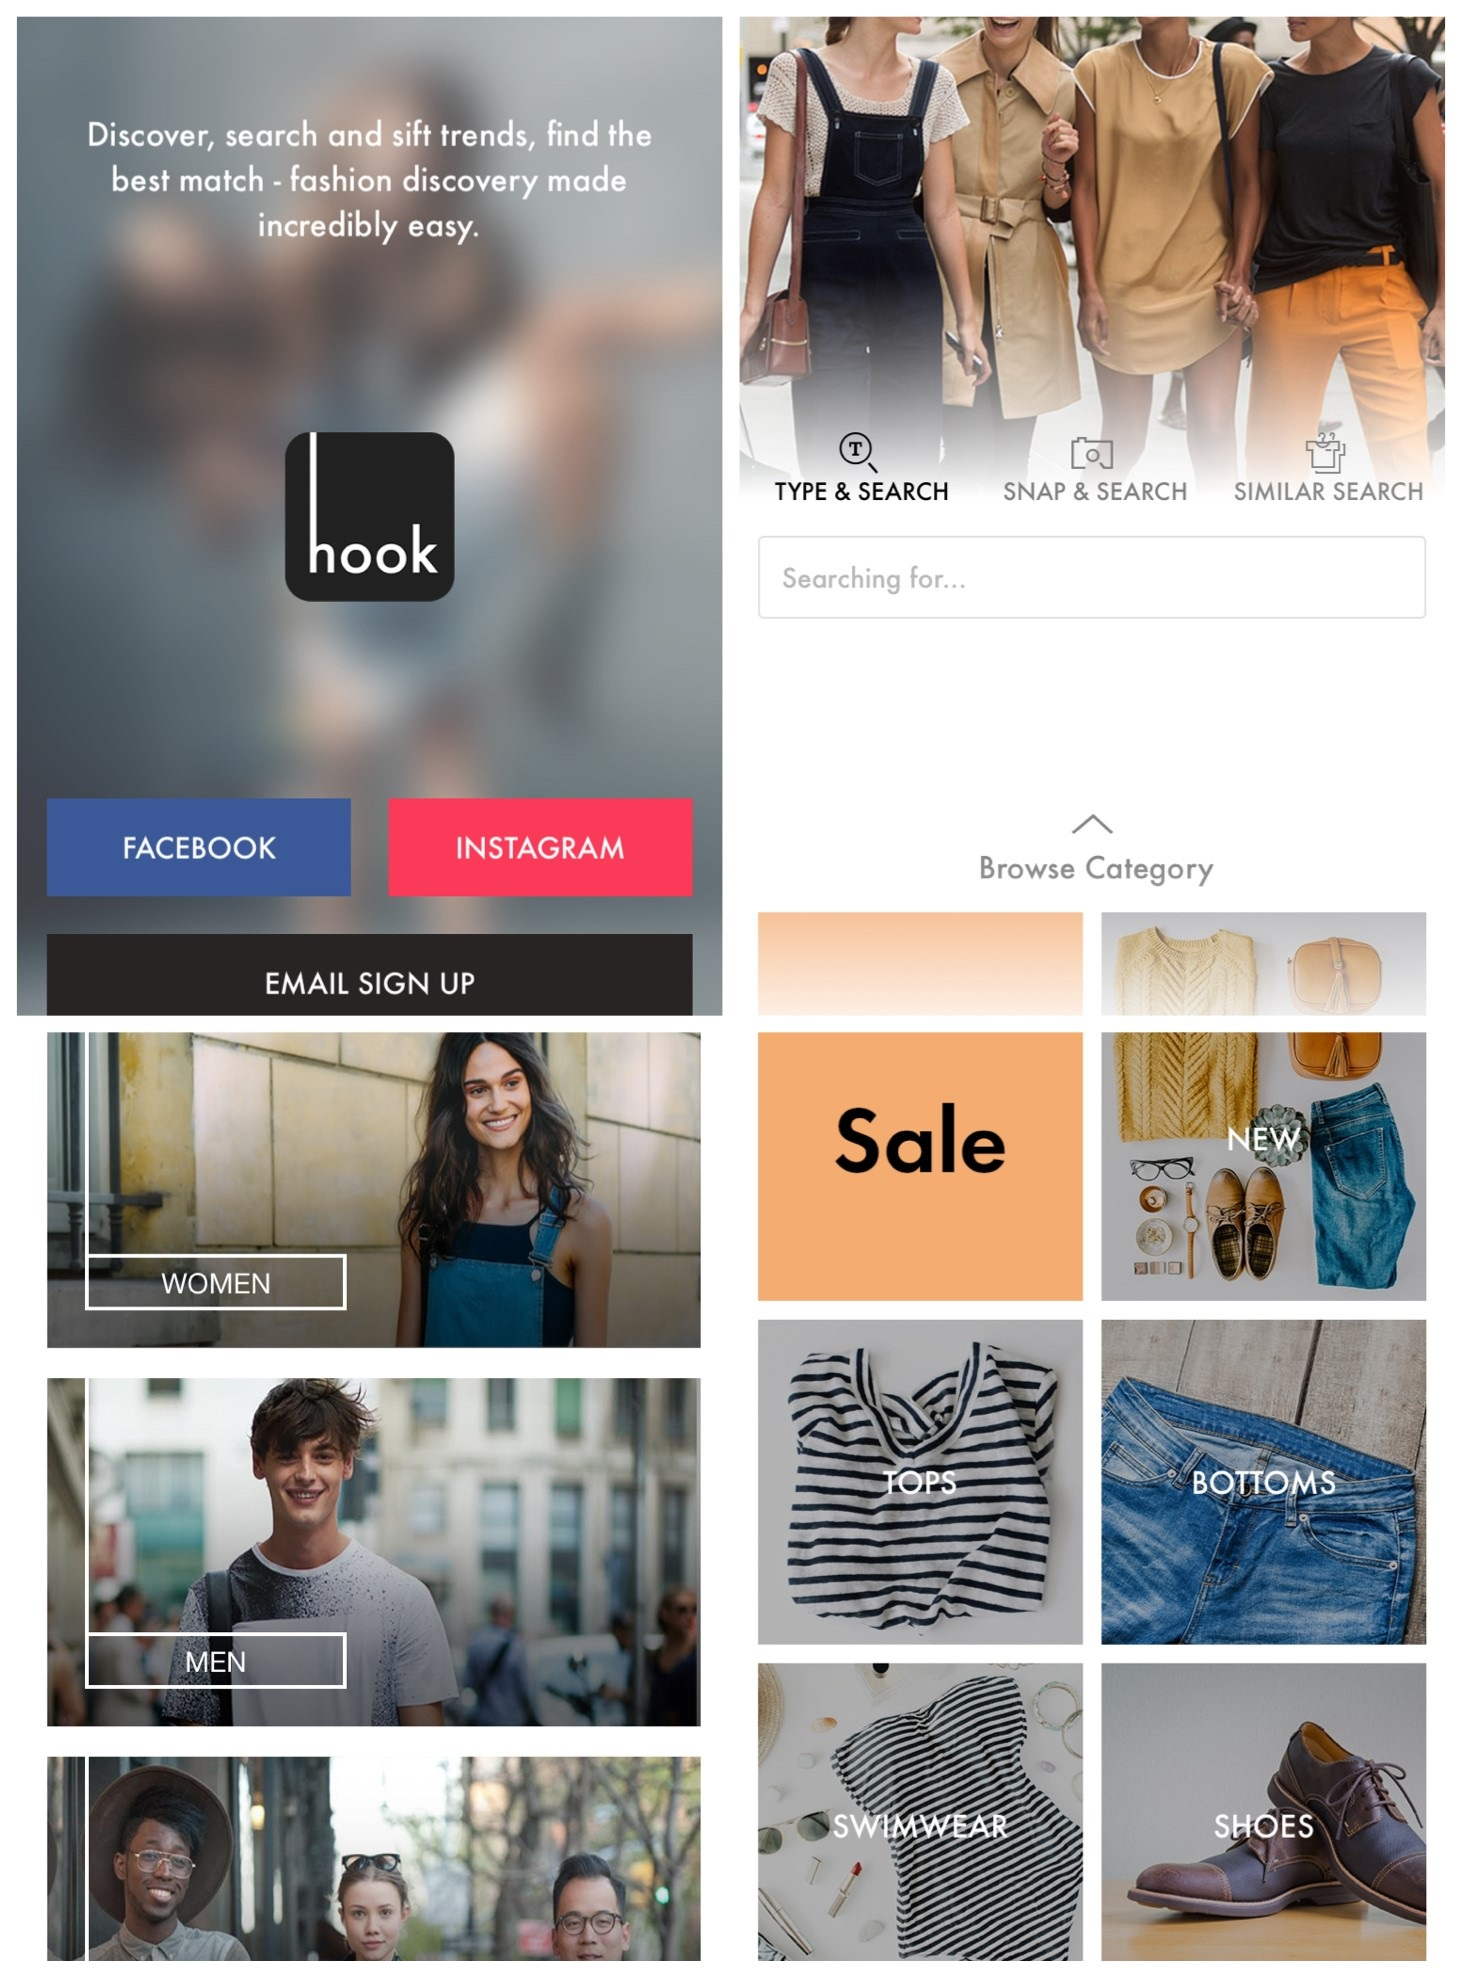 Hook: One-Stop Shopping Search Engine for Fashion App